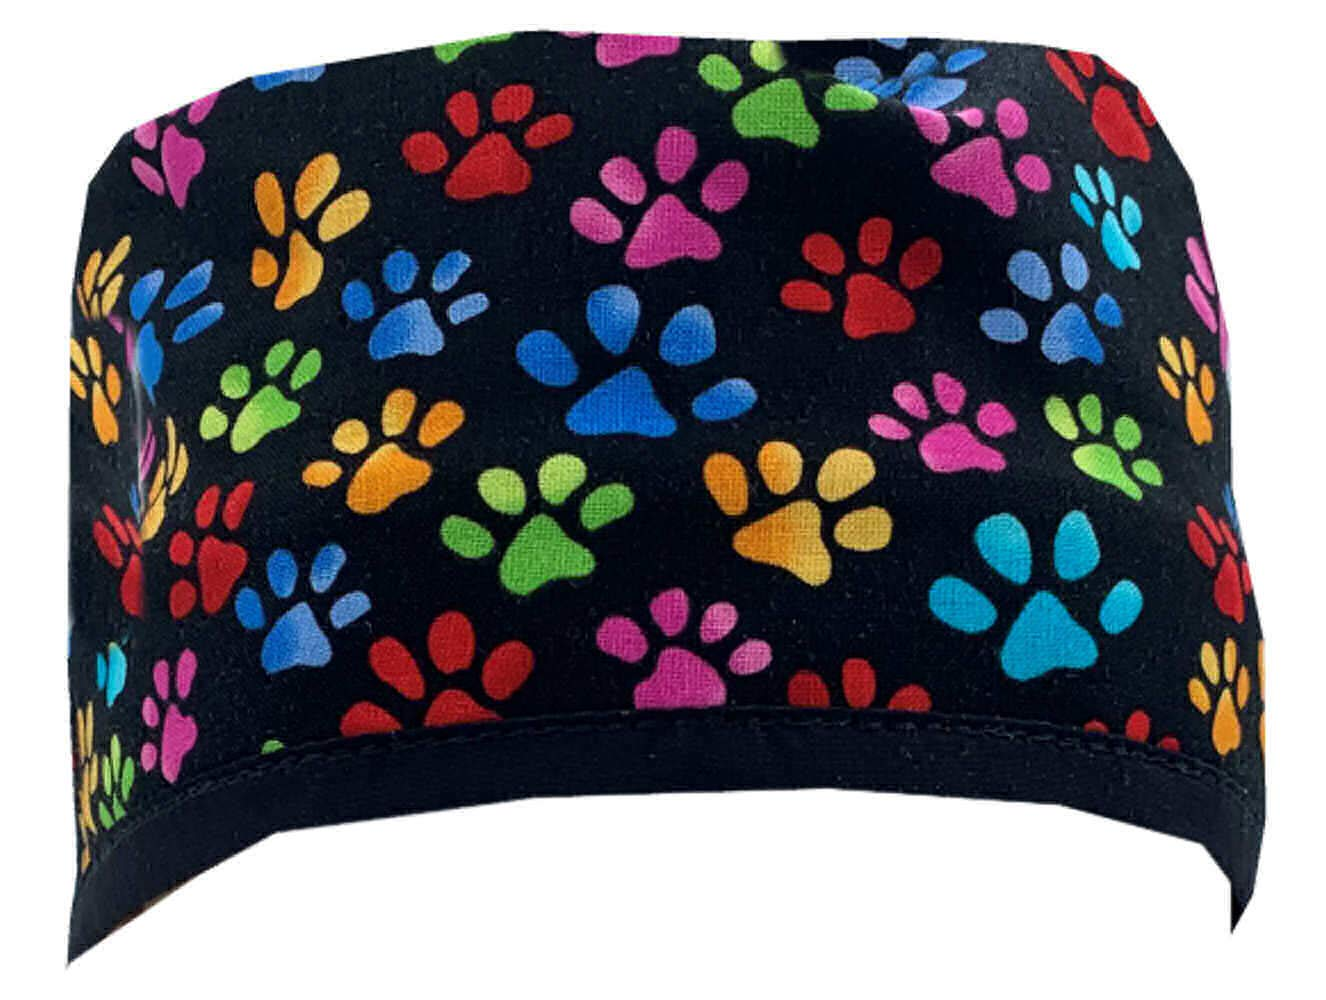 Mens and Womens Surgical Scrub Cap - Multi Color Paws w/Black Ties by Sparkling Earth